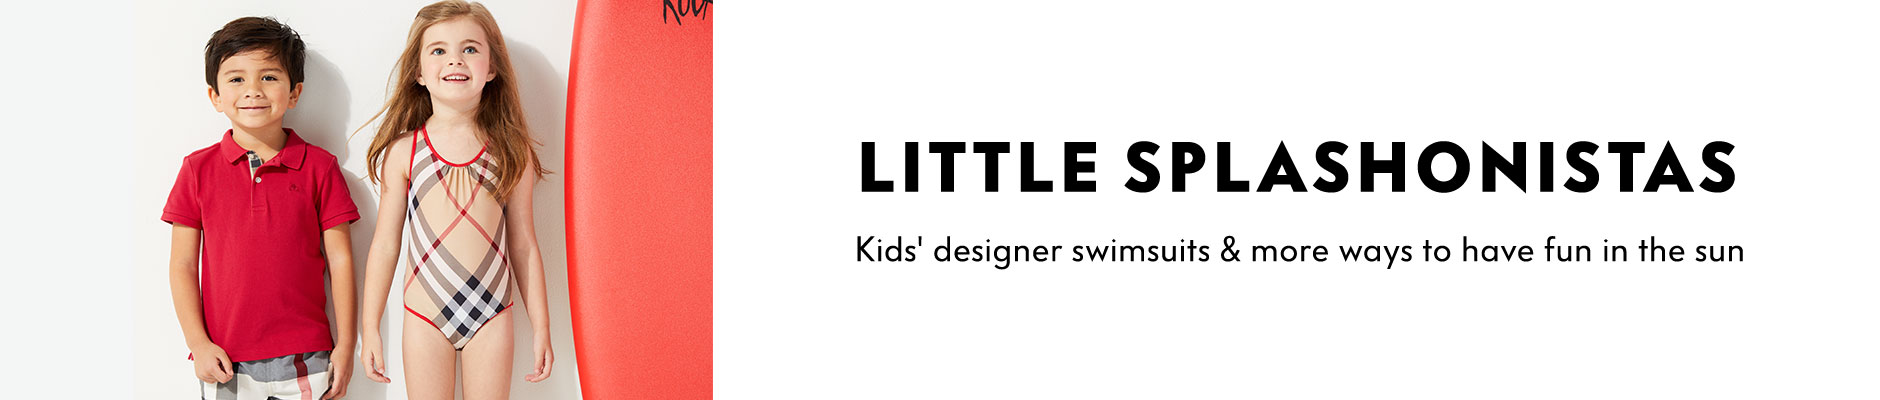 Little Splashonistas, kids' designer swimsuits & more ways to have fun in the sun